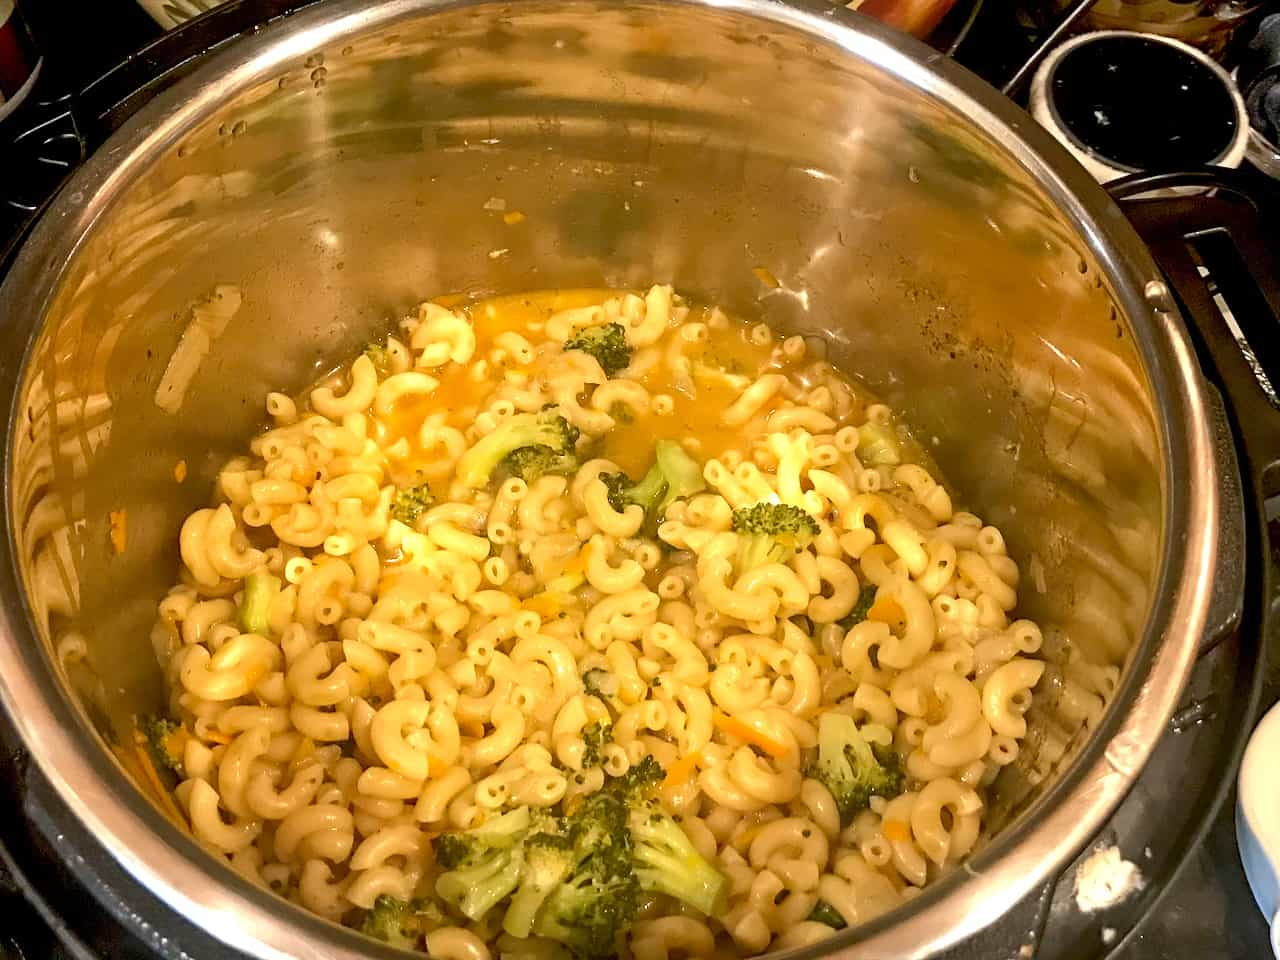 pasta, broccoli, spices, and broth in an instant pot